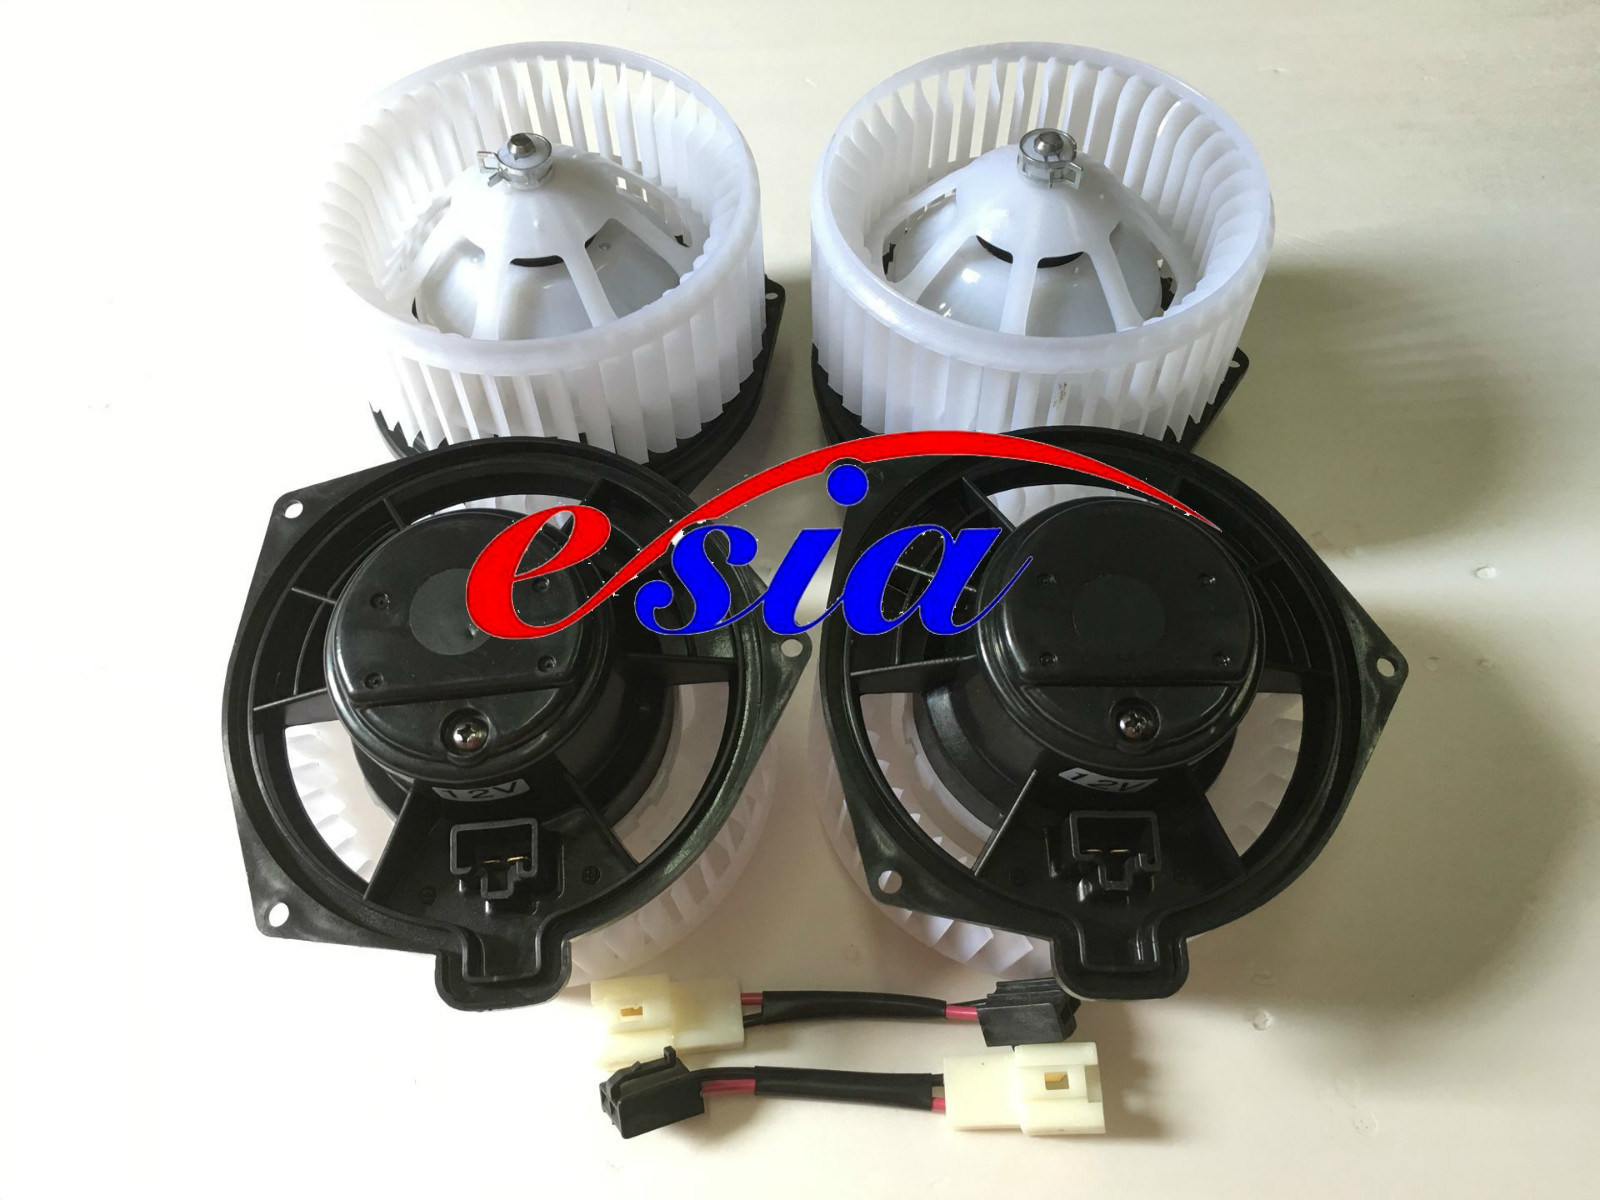 Auto Parts AC DC/Blower Motor for Kenari Kelisa- Kembara